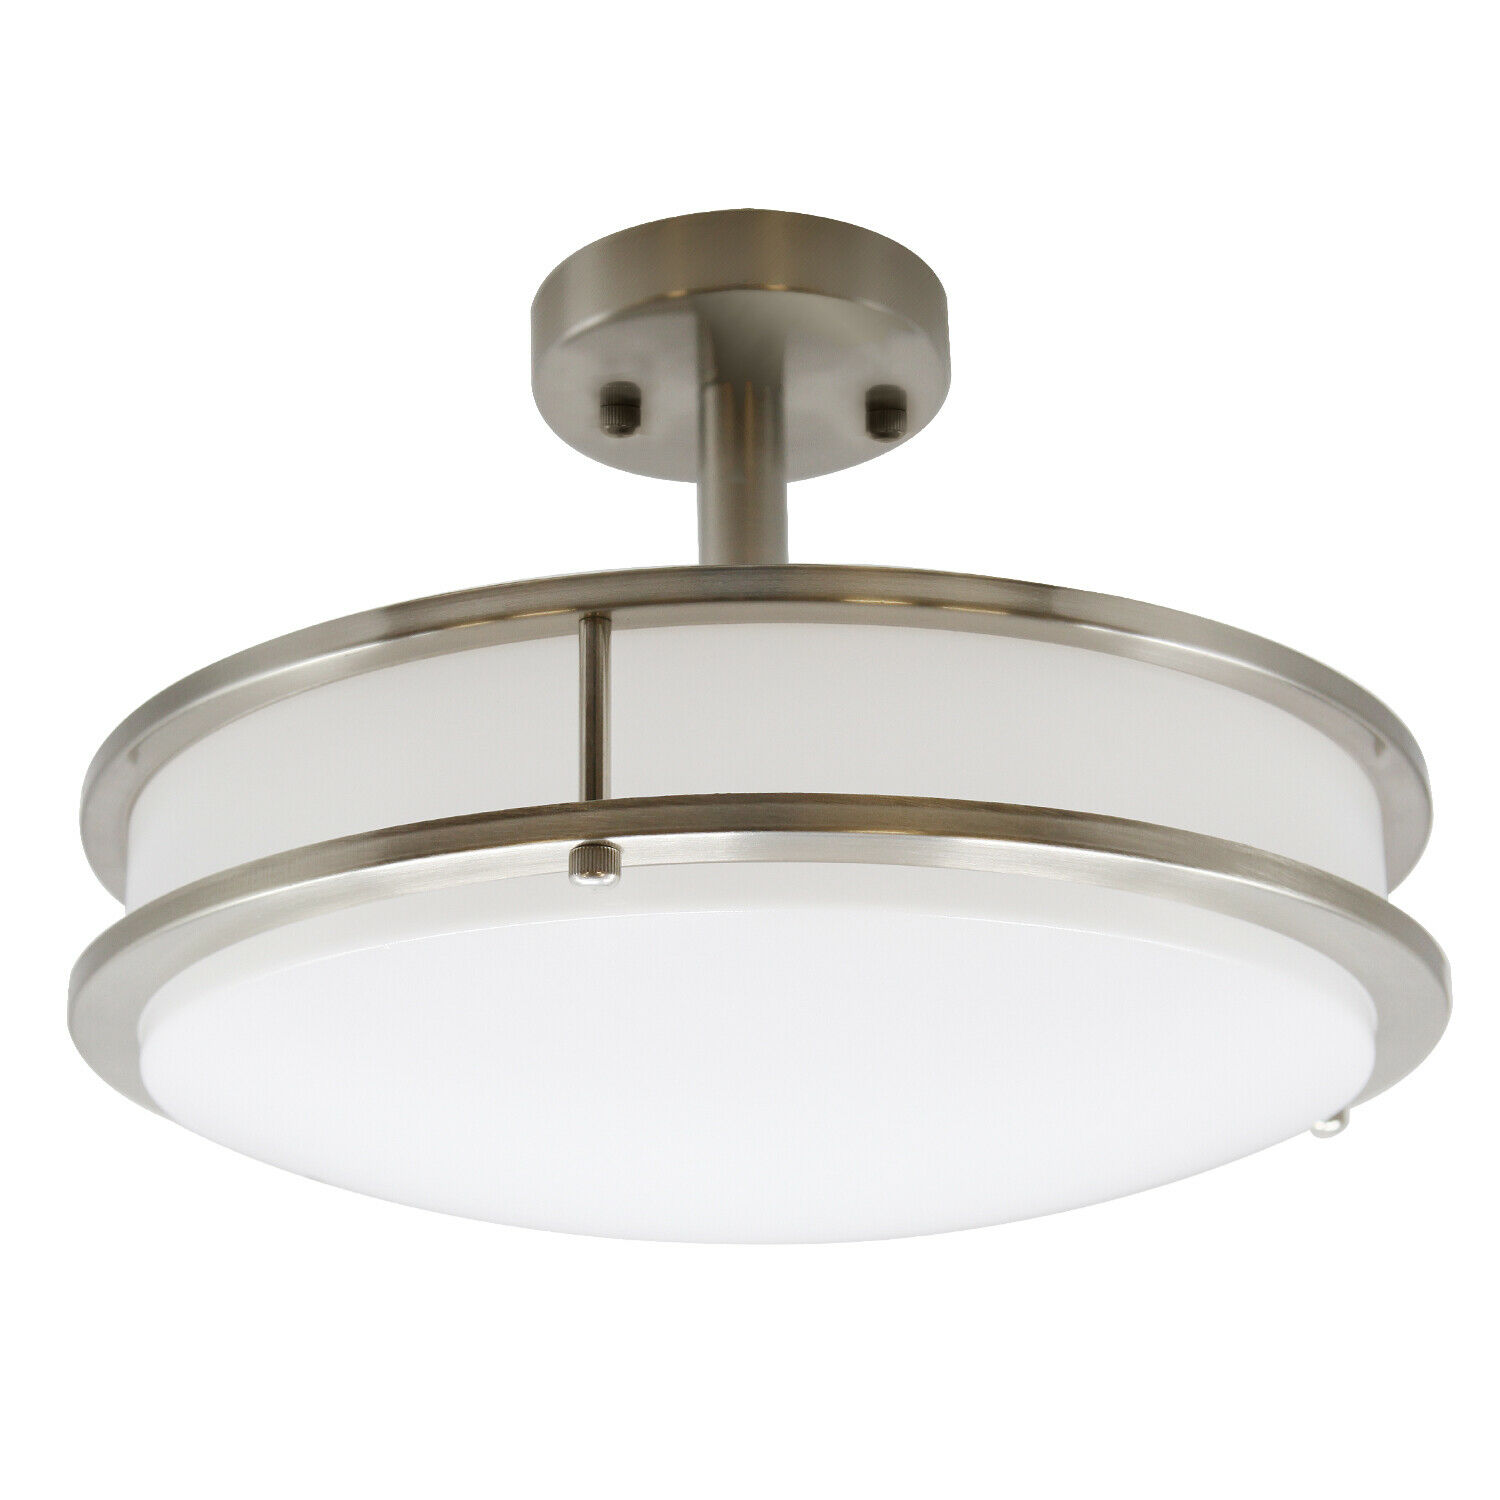 16 Flush Mount Led Light Fixtures Dimmable Low Profile Ceiling Light Round For Sale Online Ebay